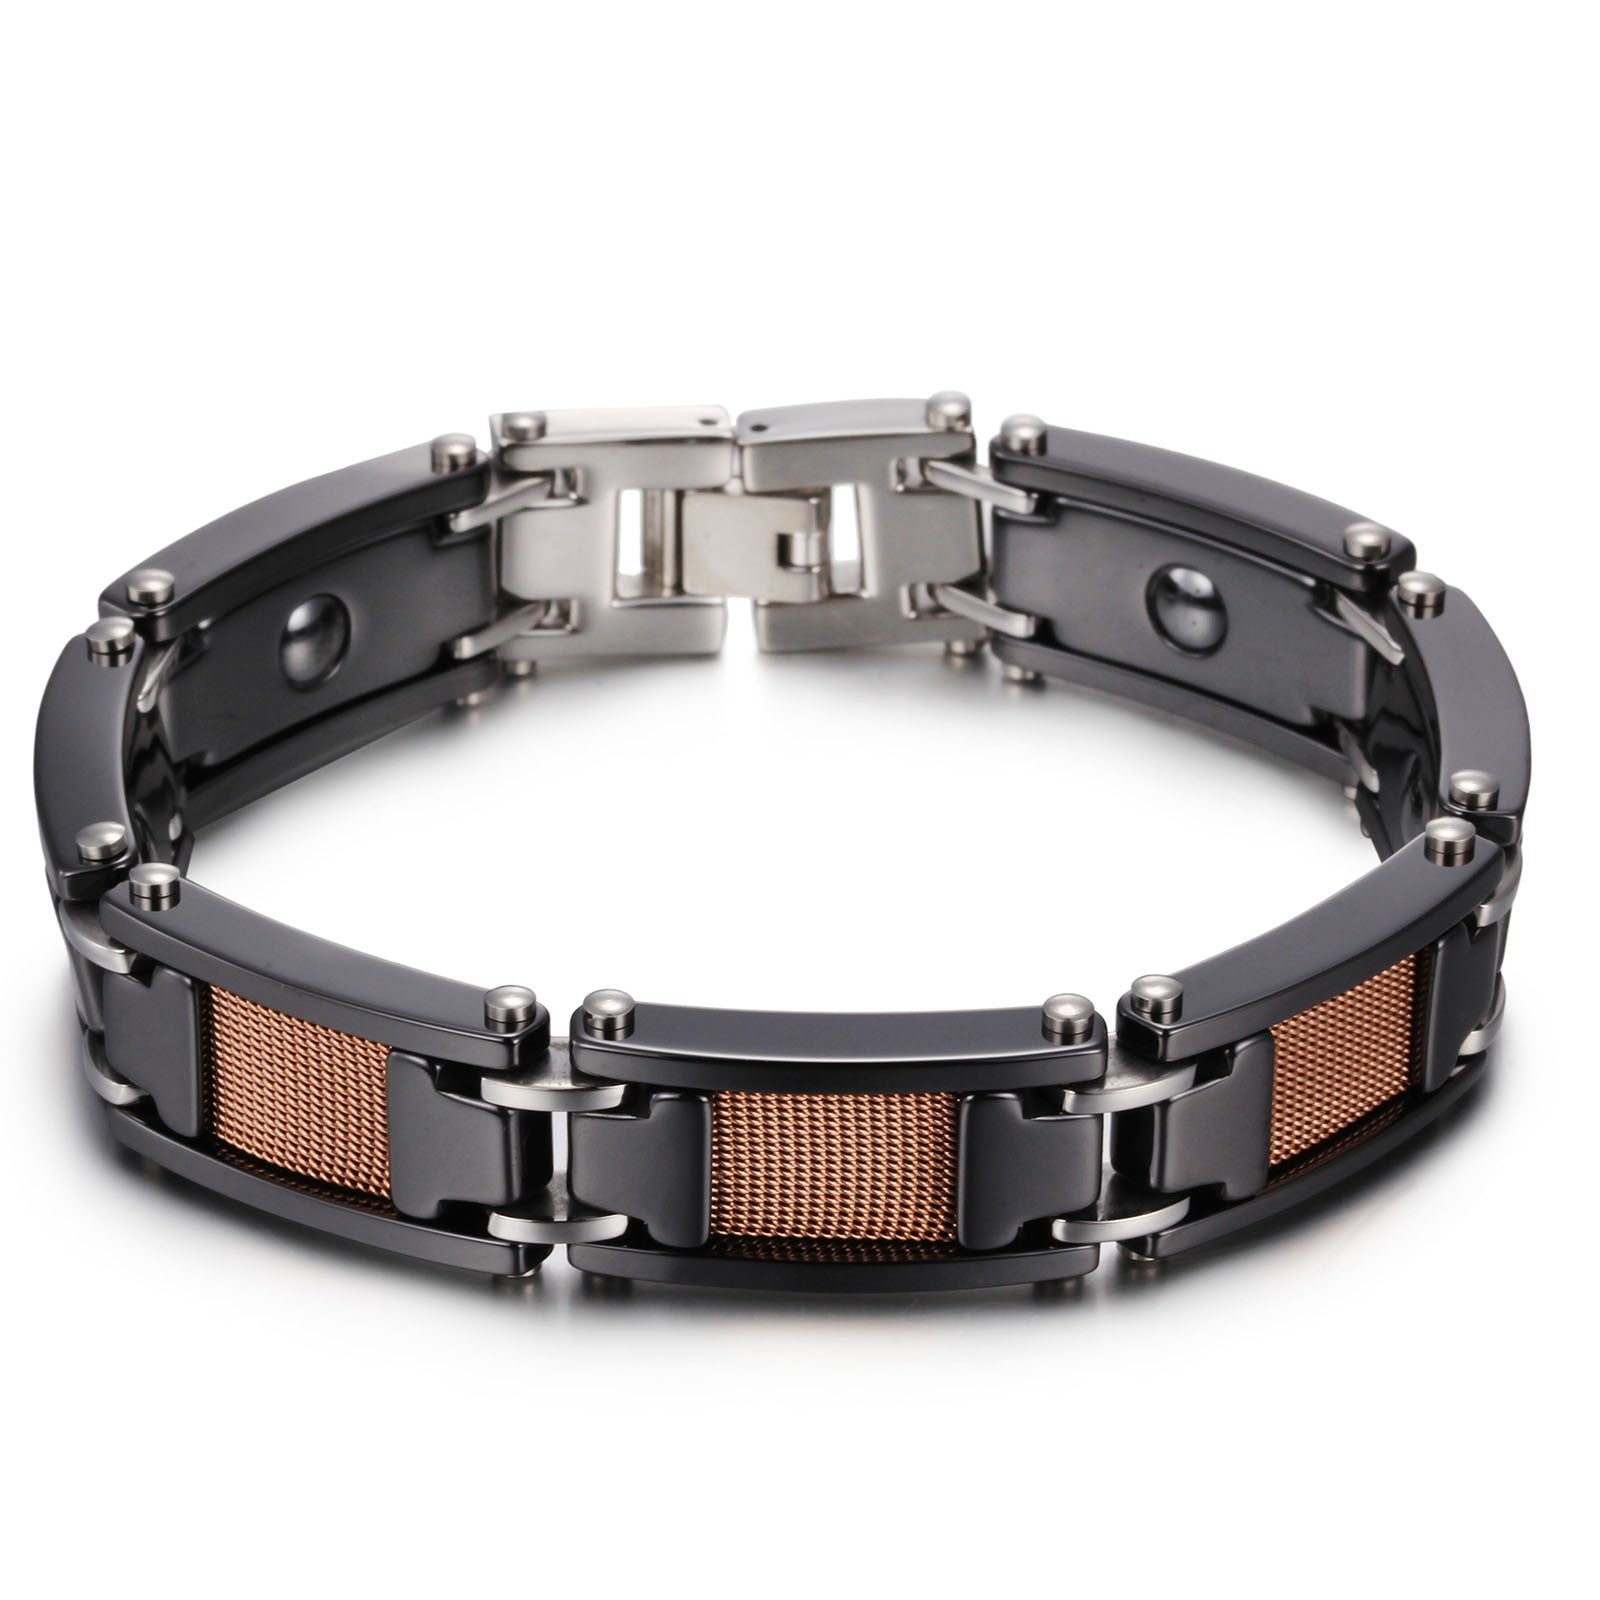 chain fashion mm men cool health bracelet bracelets with for energy tungsten product ceramic stone magnetic pulseiras black